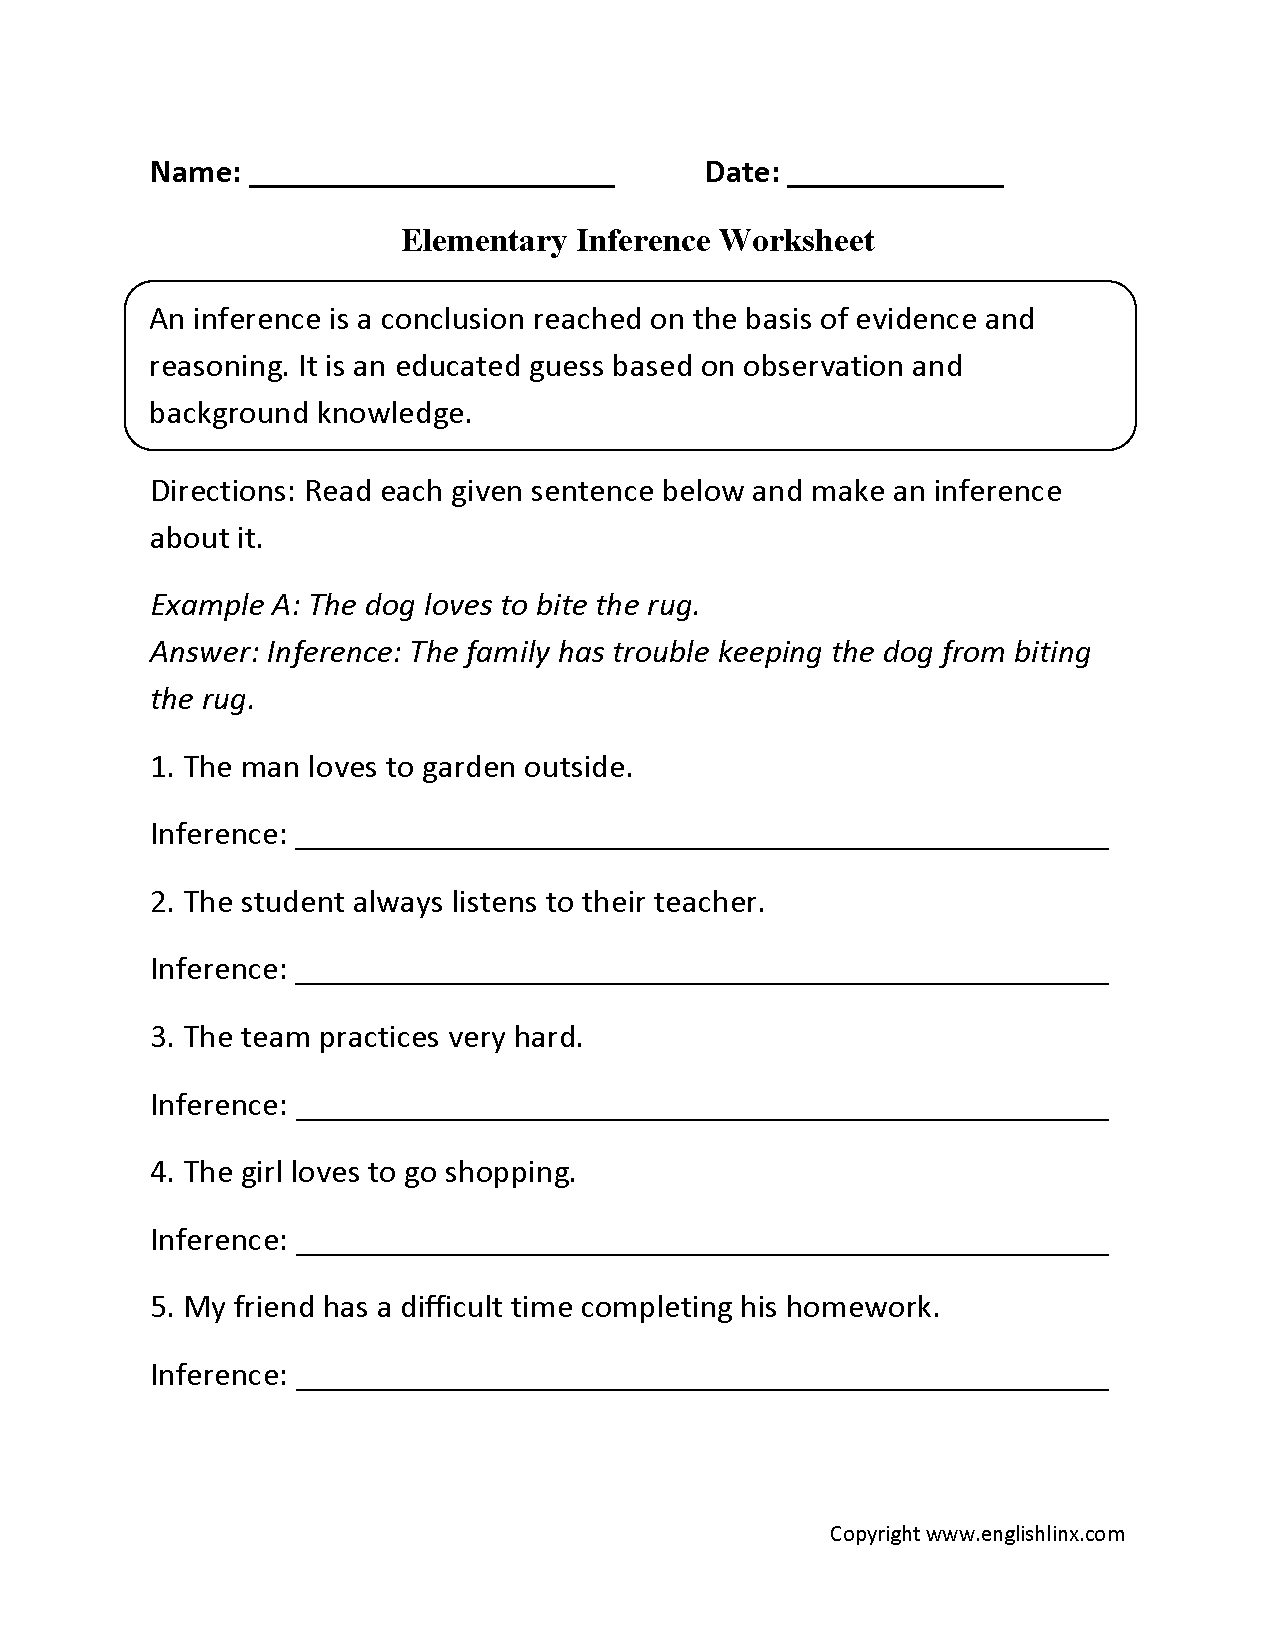 Reading Worksheets  Inference Worksheets With Inferences Worksheet 4